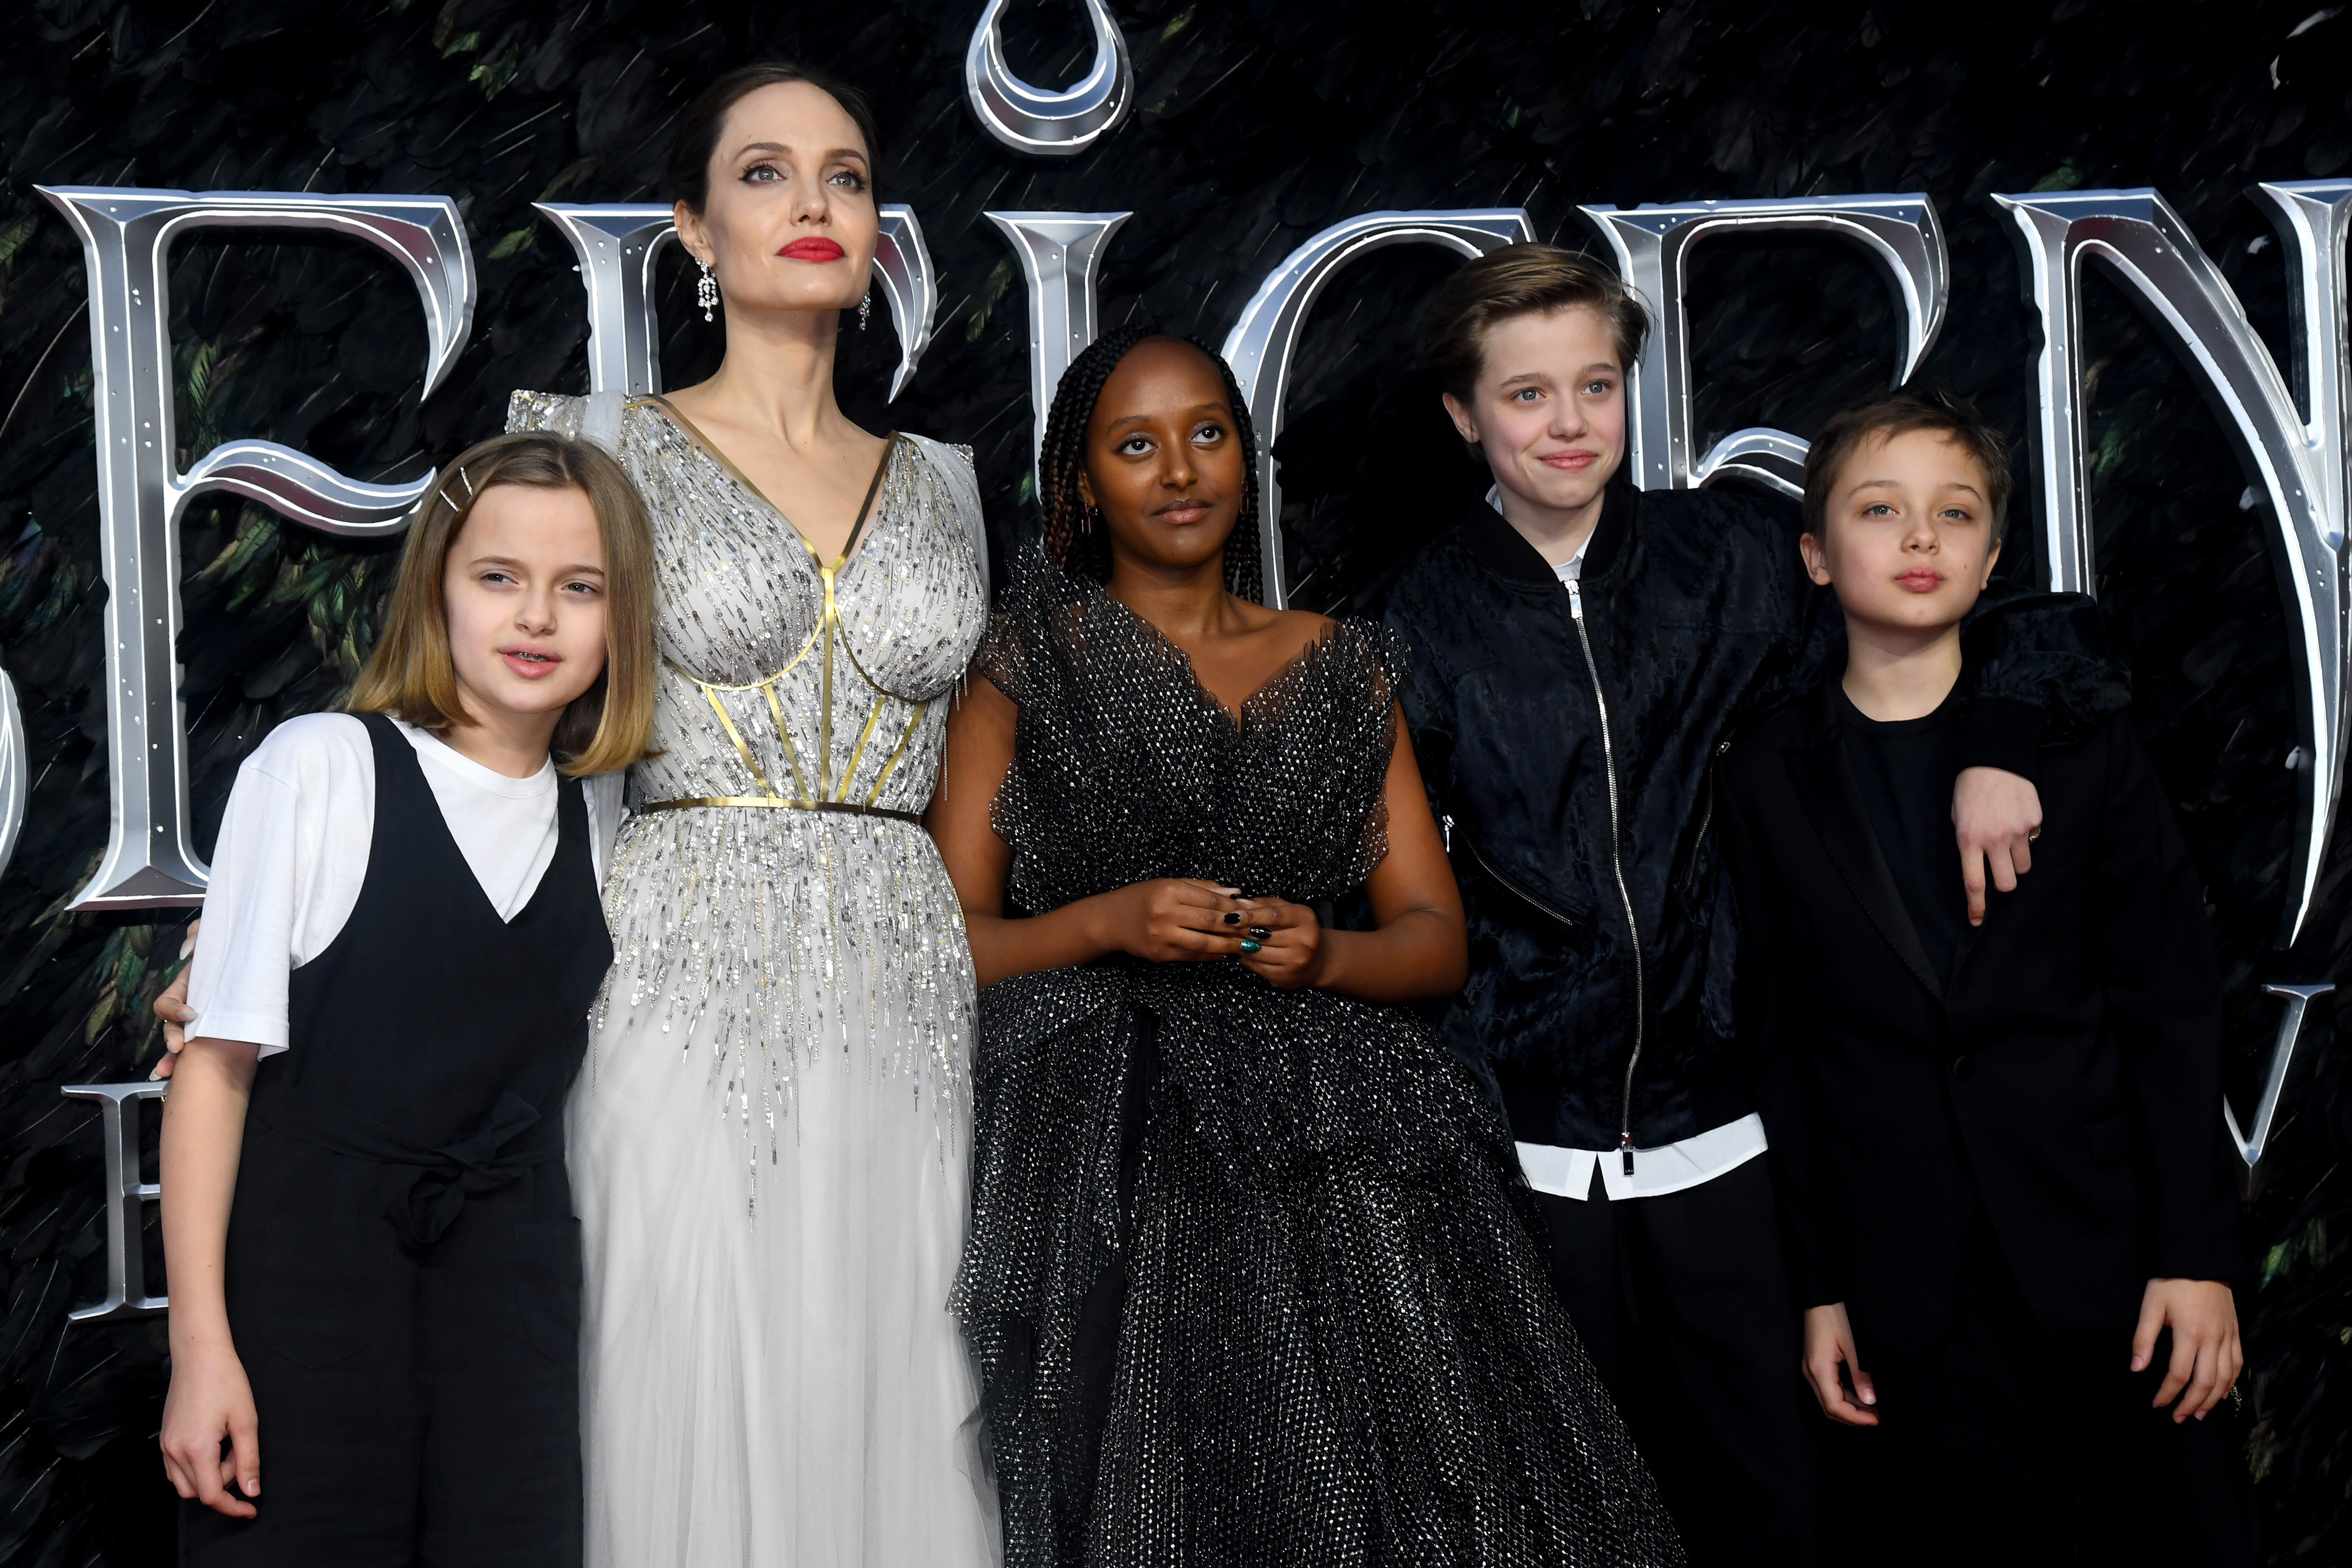 Image Credit: Getty Images/Dave J Hogan | Jolie with her children at the Maleficent: Mistress of Evil European Premier